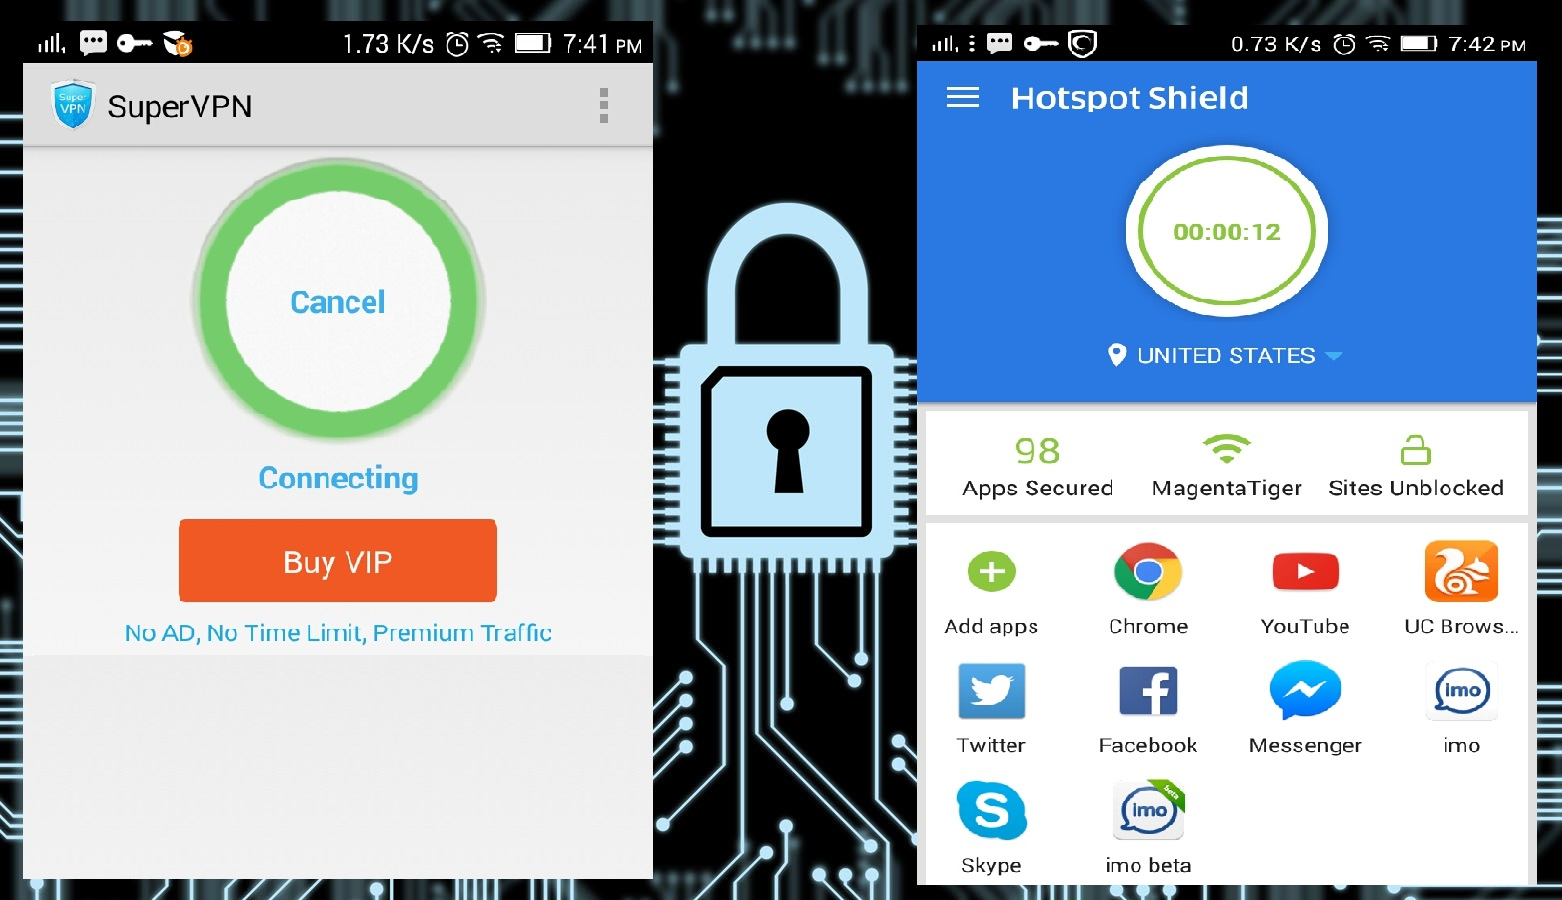 Phone Free Download Facebook App For Android Phone best vpn for run blocked android apps in your country ukliker but when you audio video call every not support like imofacebook messengerskype etc download free android